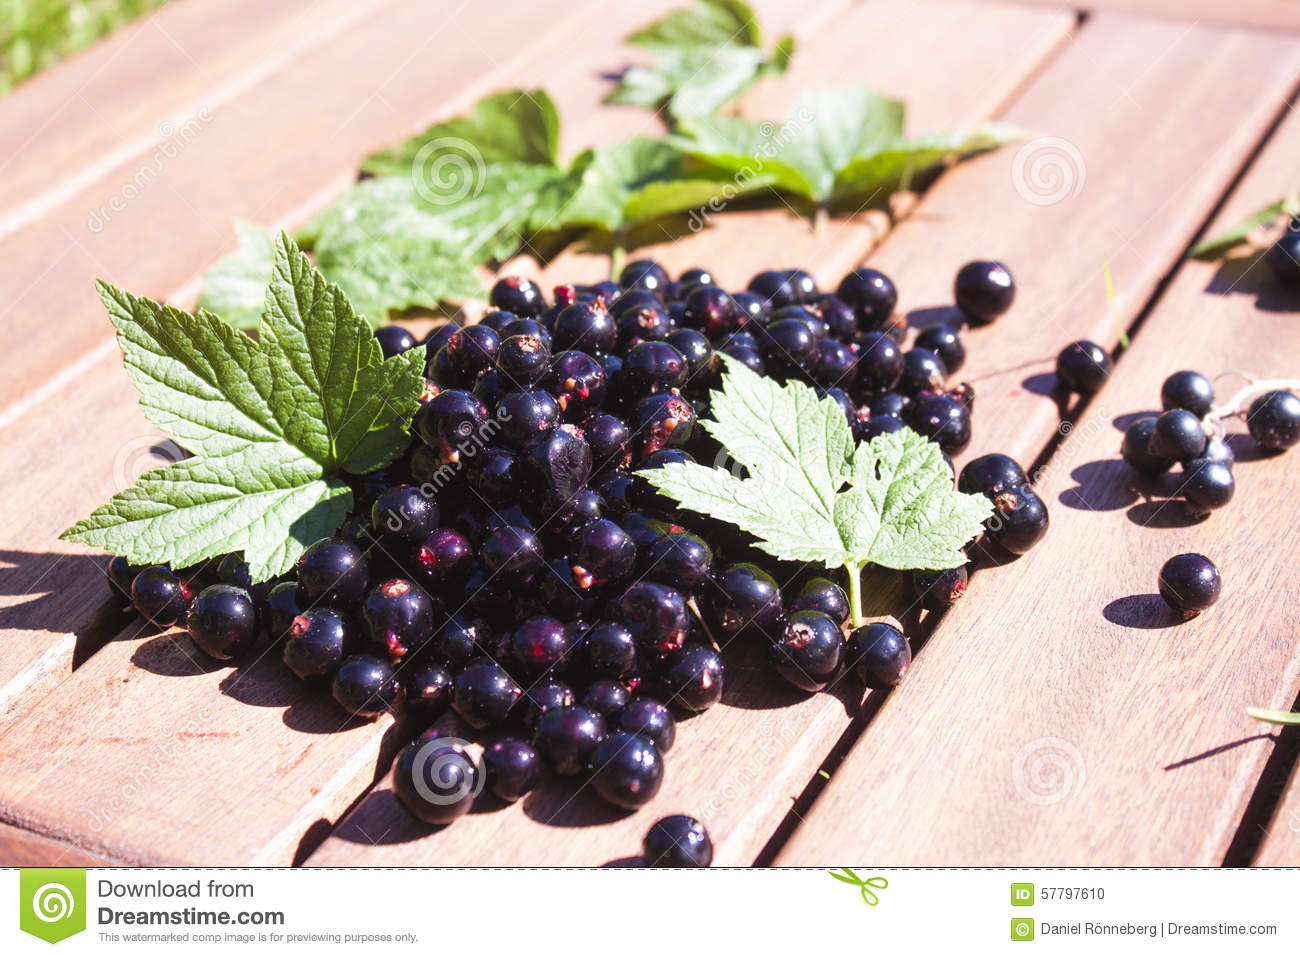 Black currant ribes nigrum